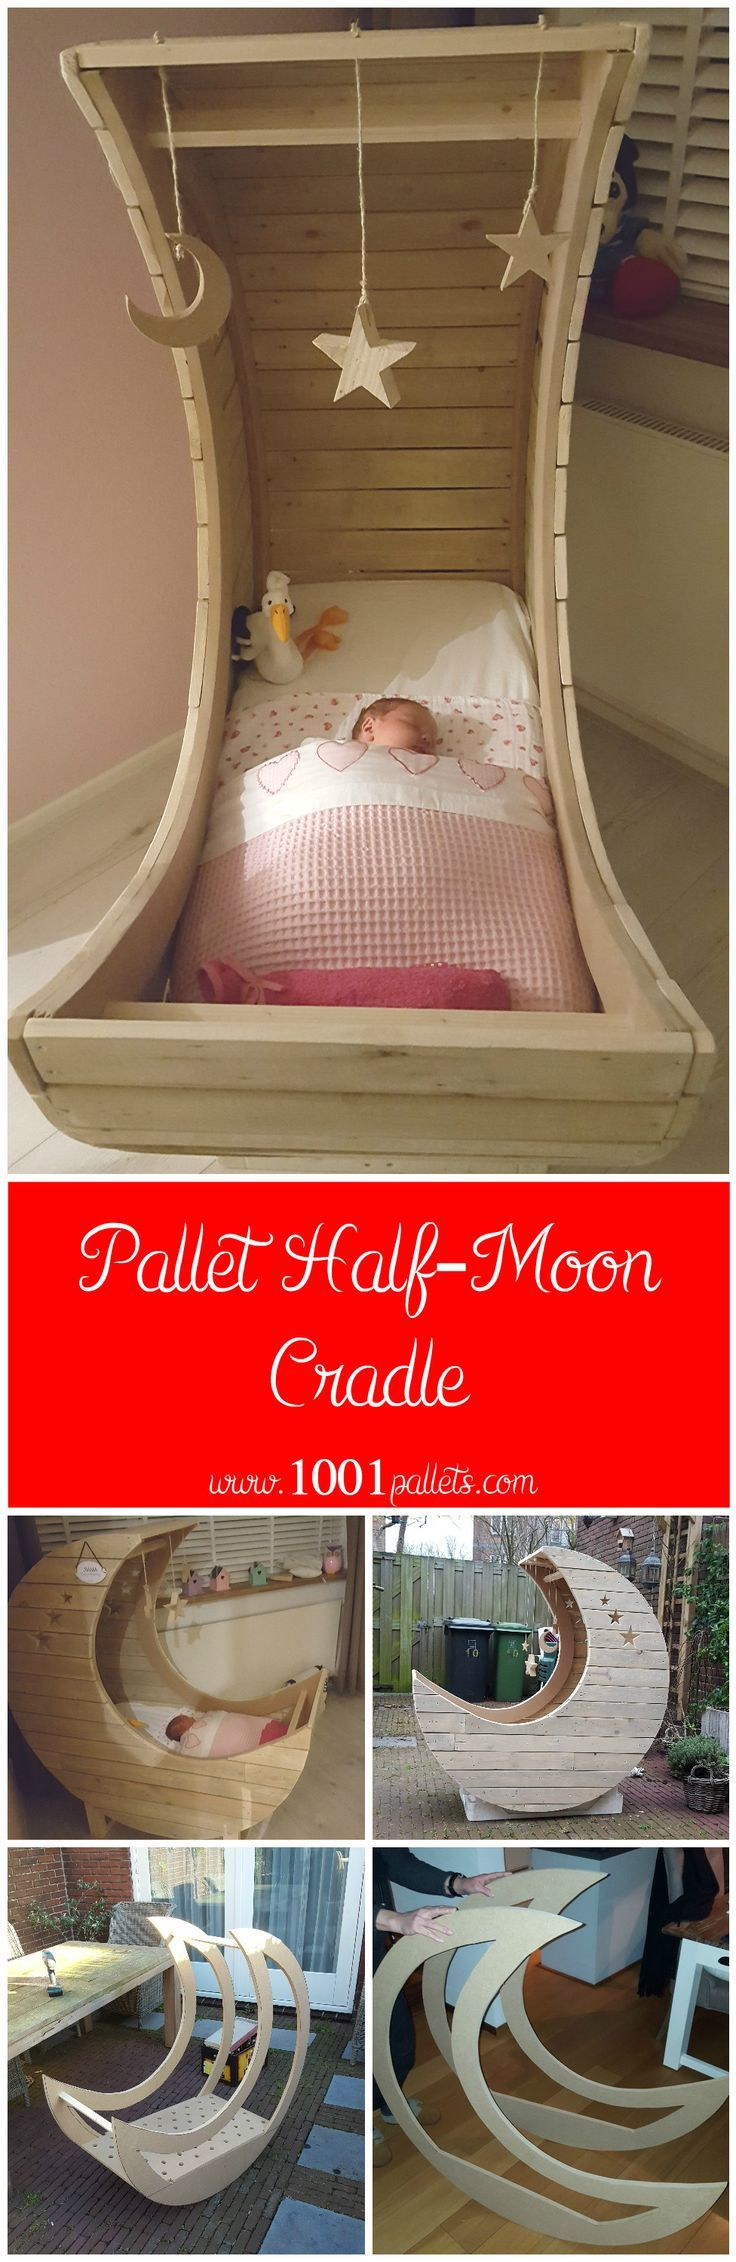 Homemade Pallet Half Moon Cradle Dream House Baby Furniture